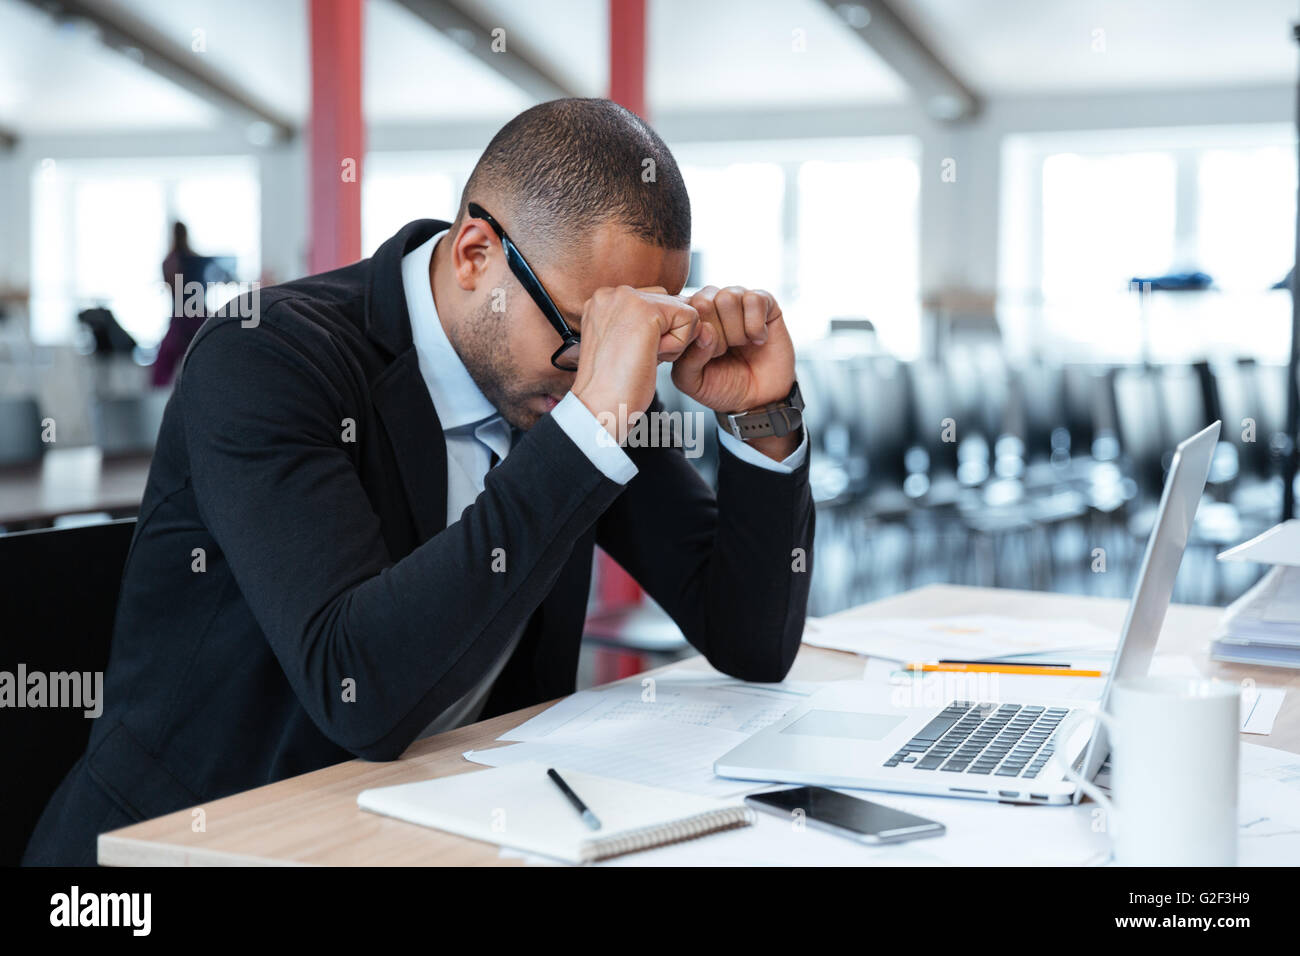 Overworked, depressed and exhausted businessman at his desk with a pile of work - Stock Image